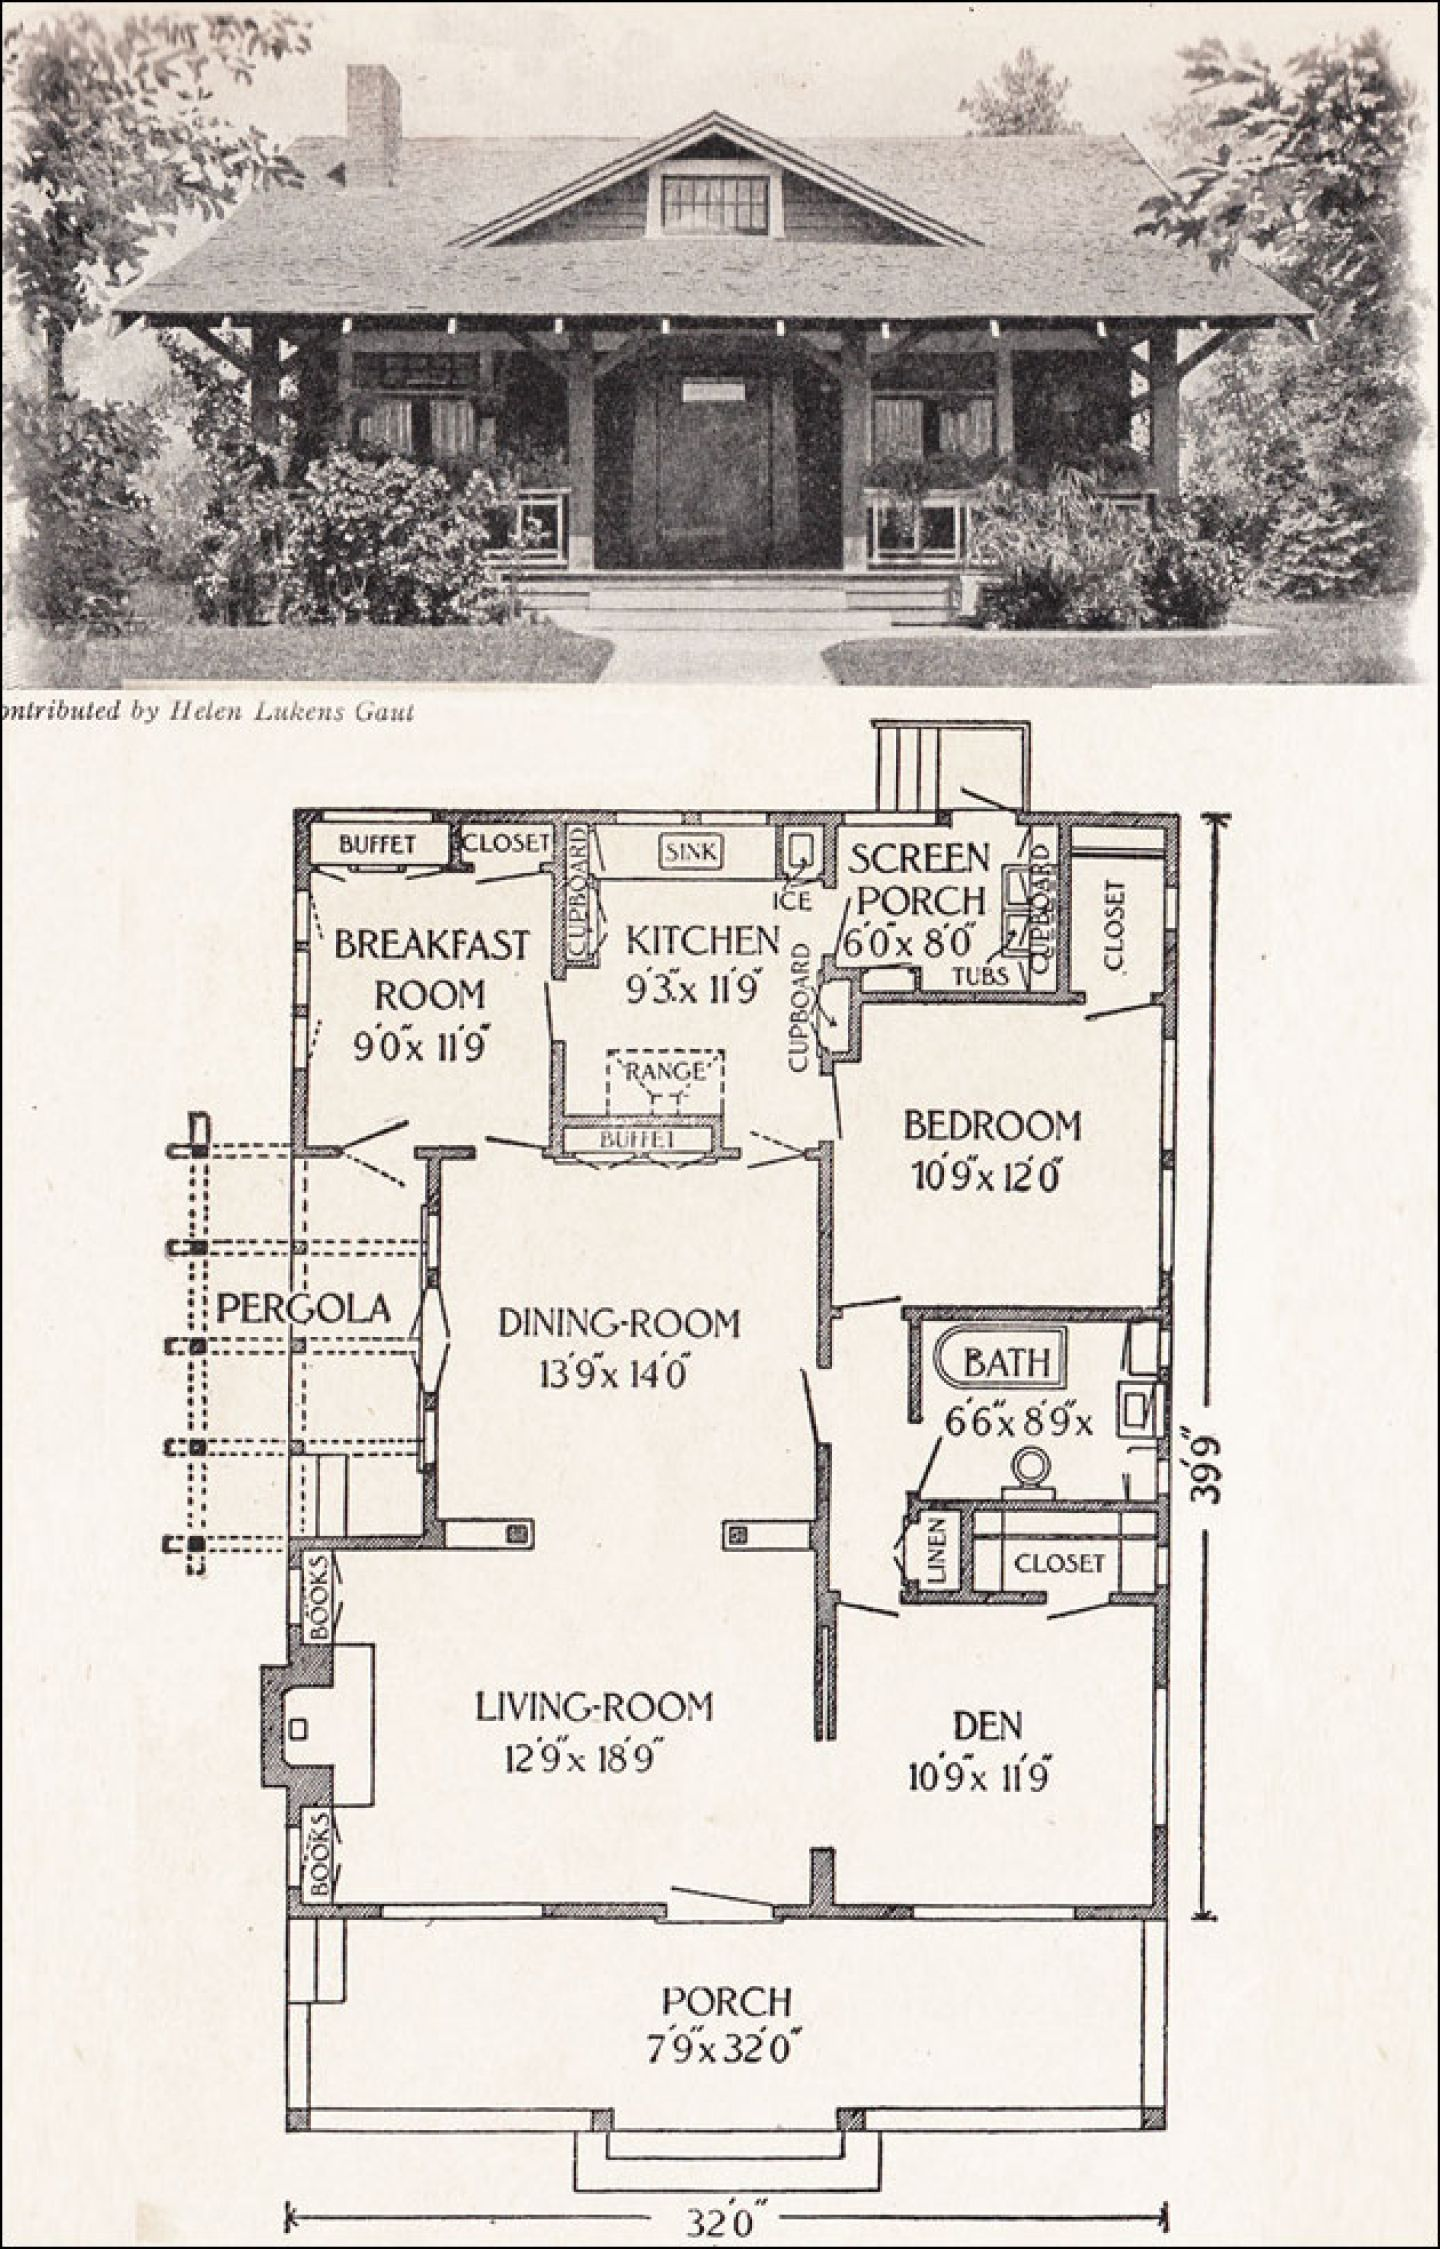 Superieur 700 Square Foot House Plans 1916 California Bungalow 1200 Sq Ft Helen  Lukens Gaut Old Wallpaper